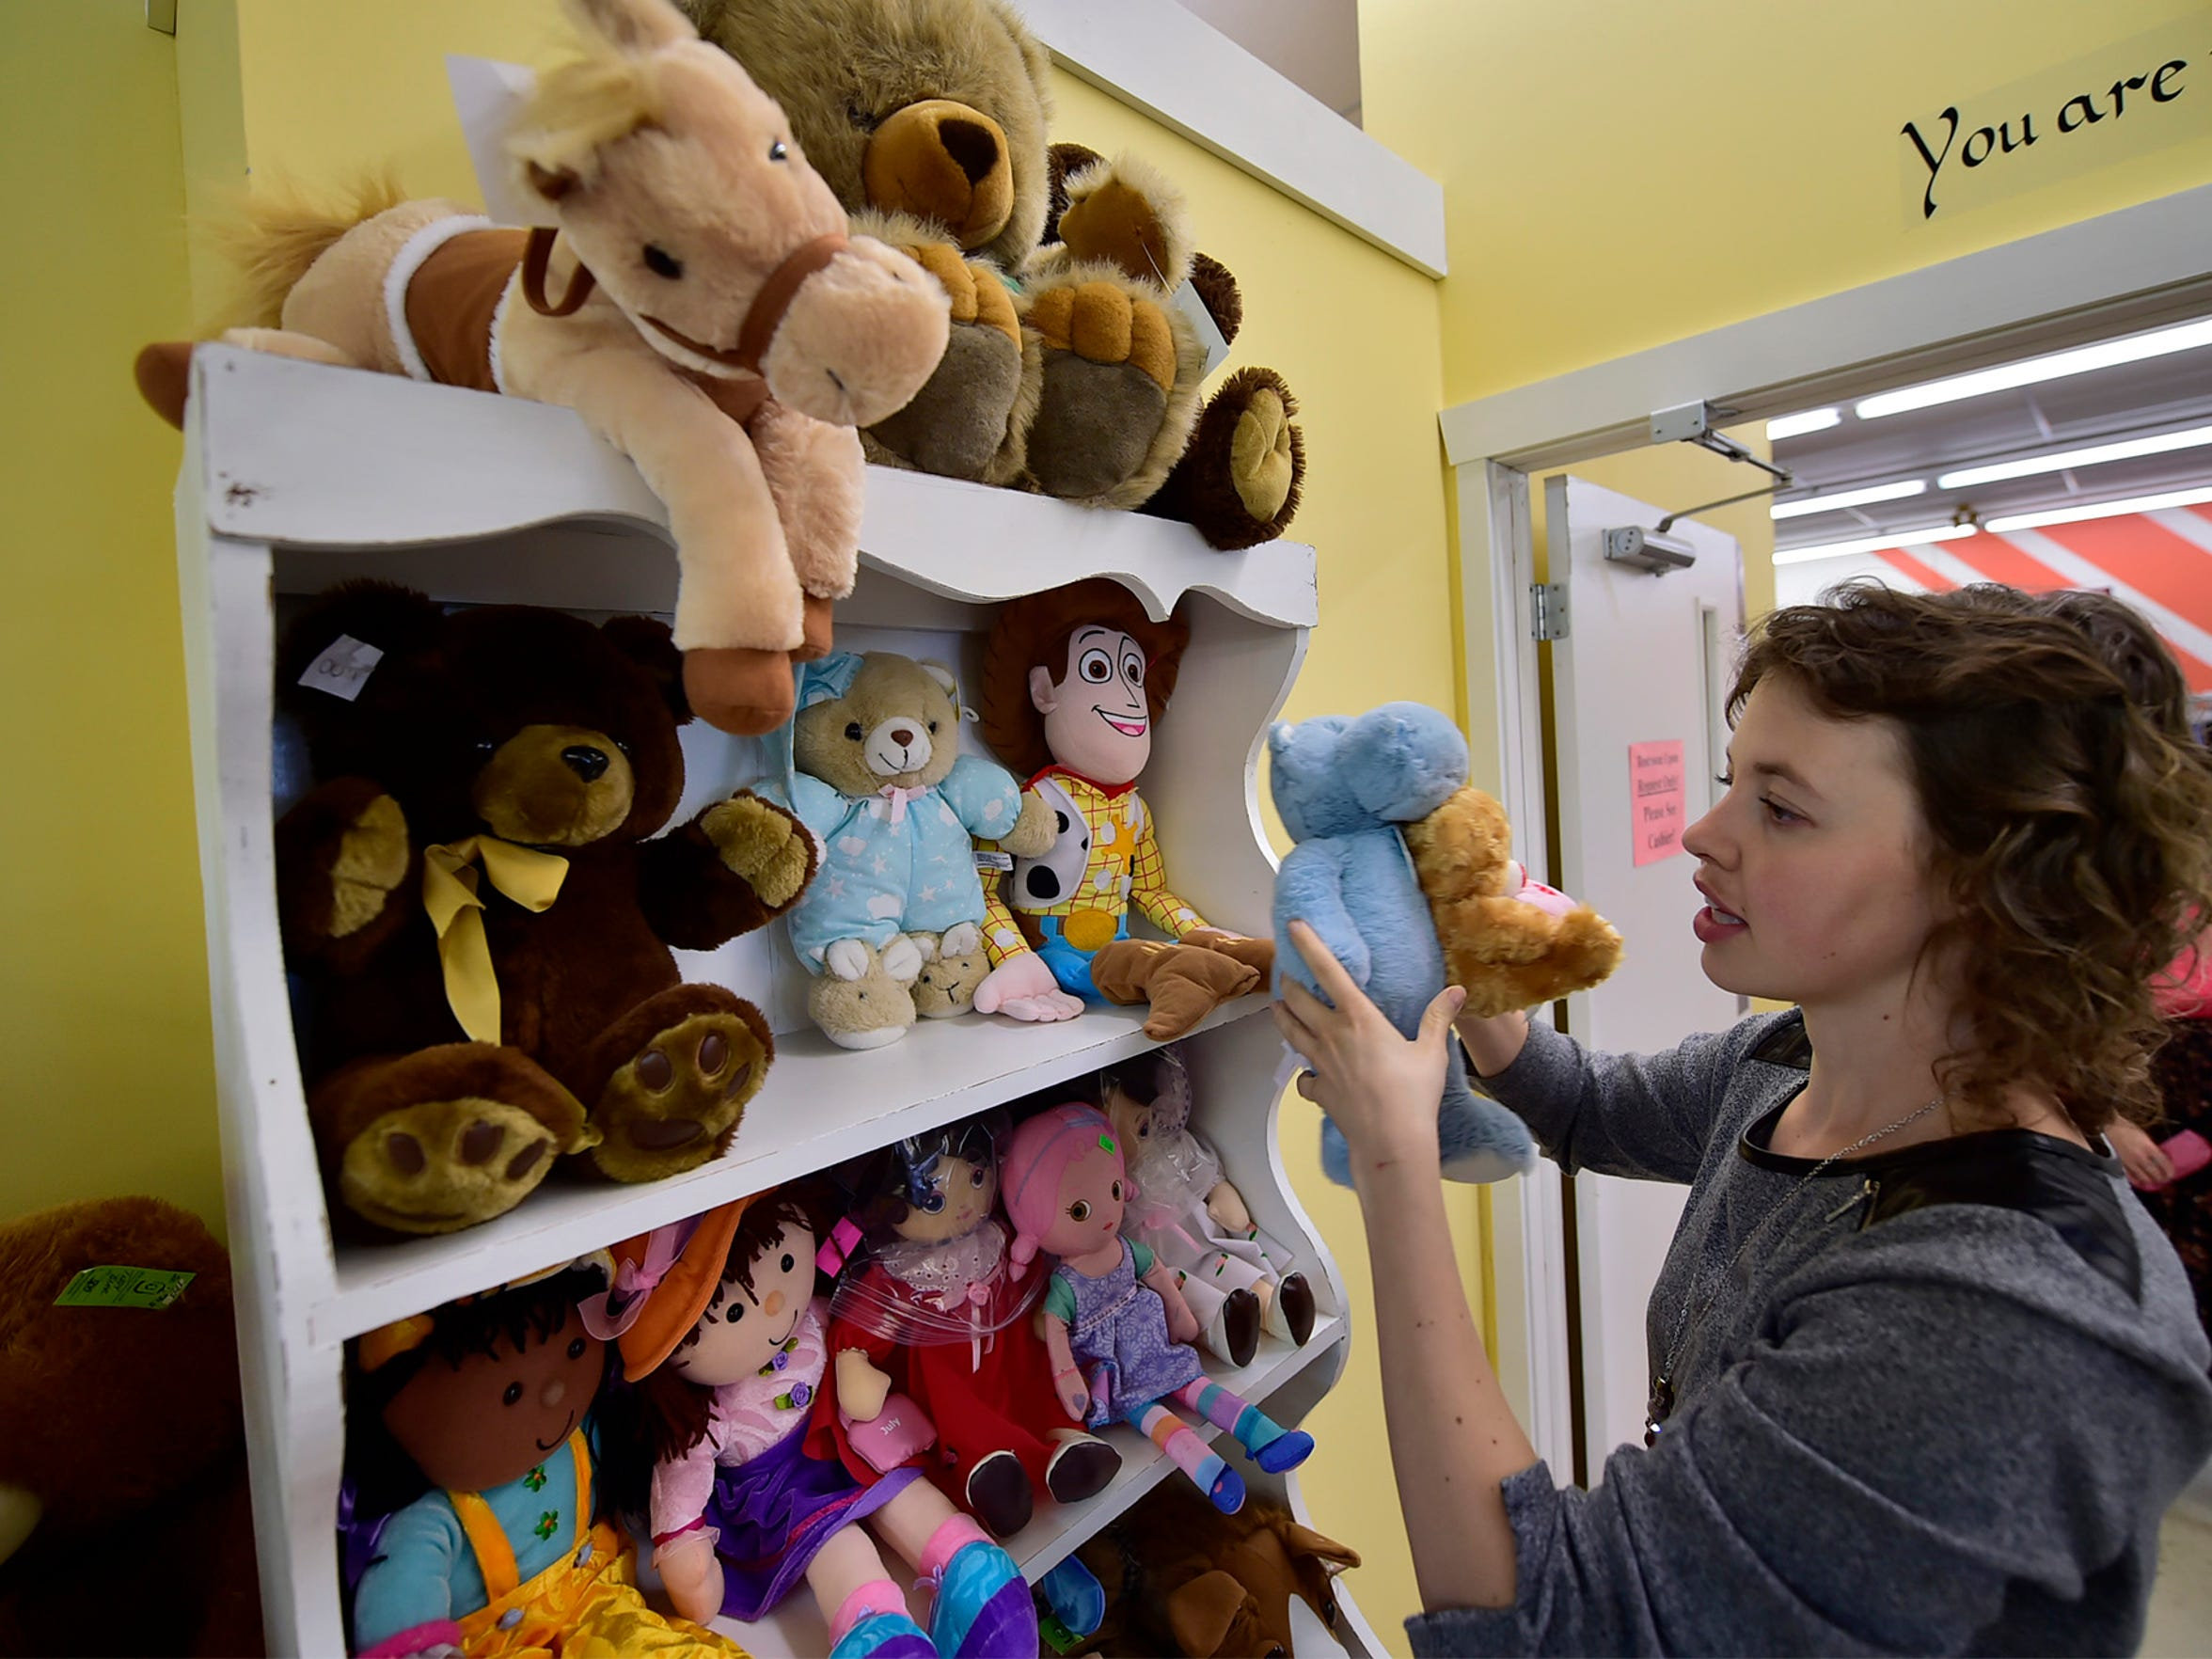 Naomi Raber, New Life Thrift Shop store manager, gets toys ready for the shelves on Thursday, June 7, 2018. The store is located at 39 Warm Spring Road, adjacent to Sunnyway Foods.